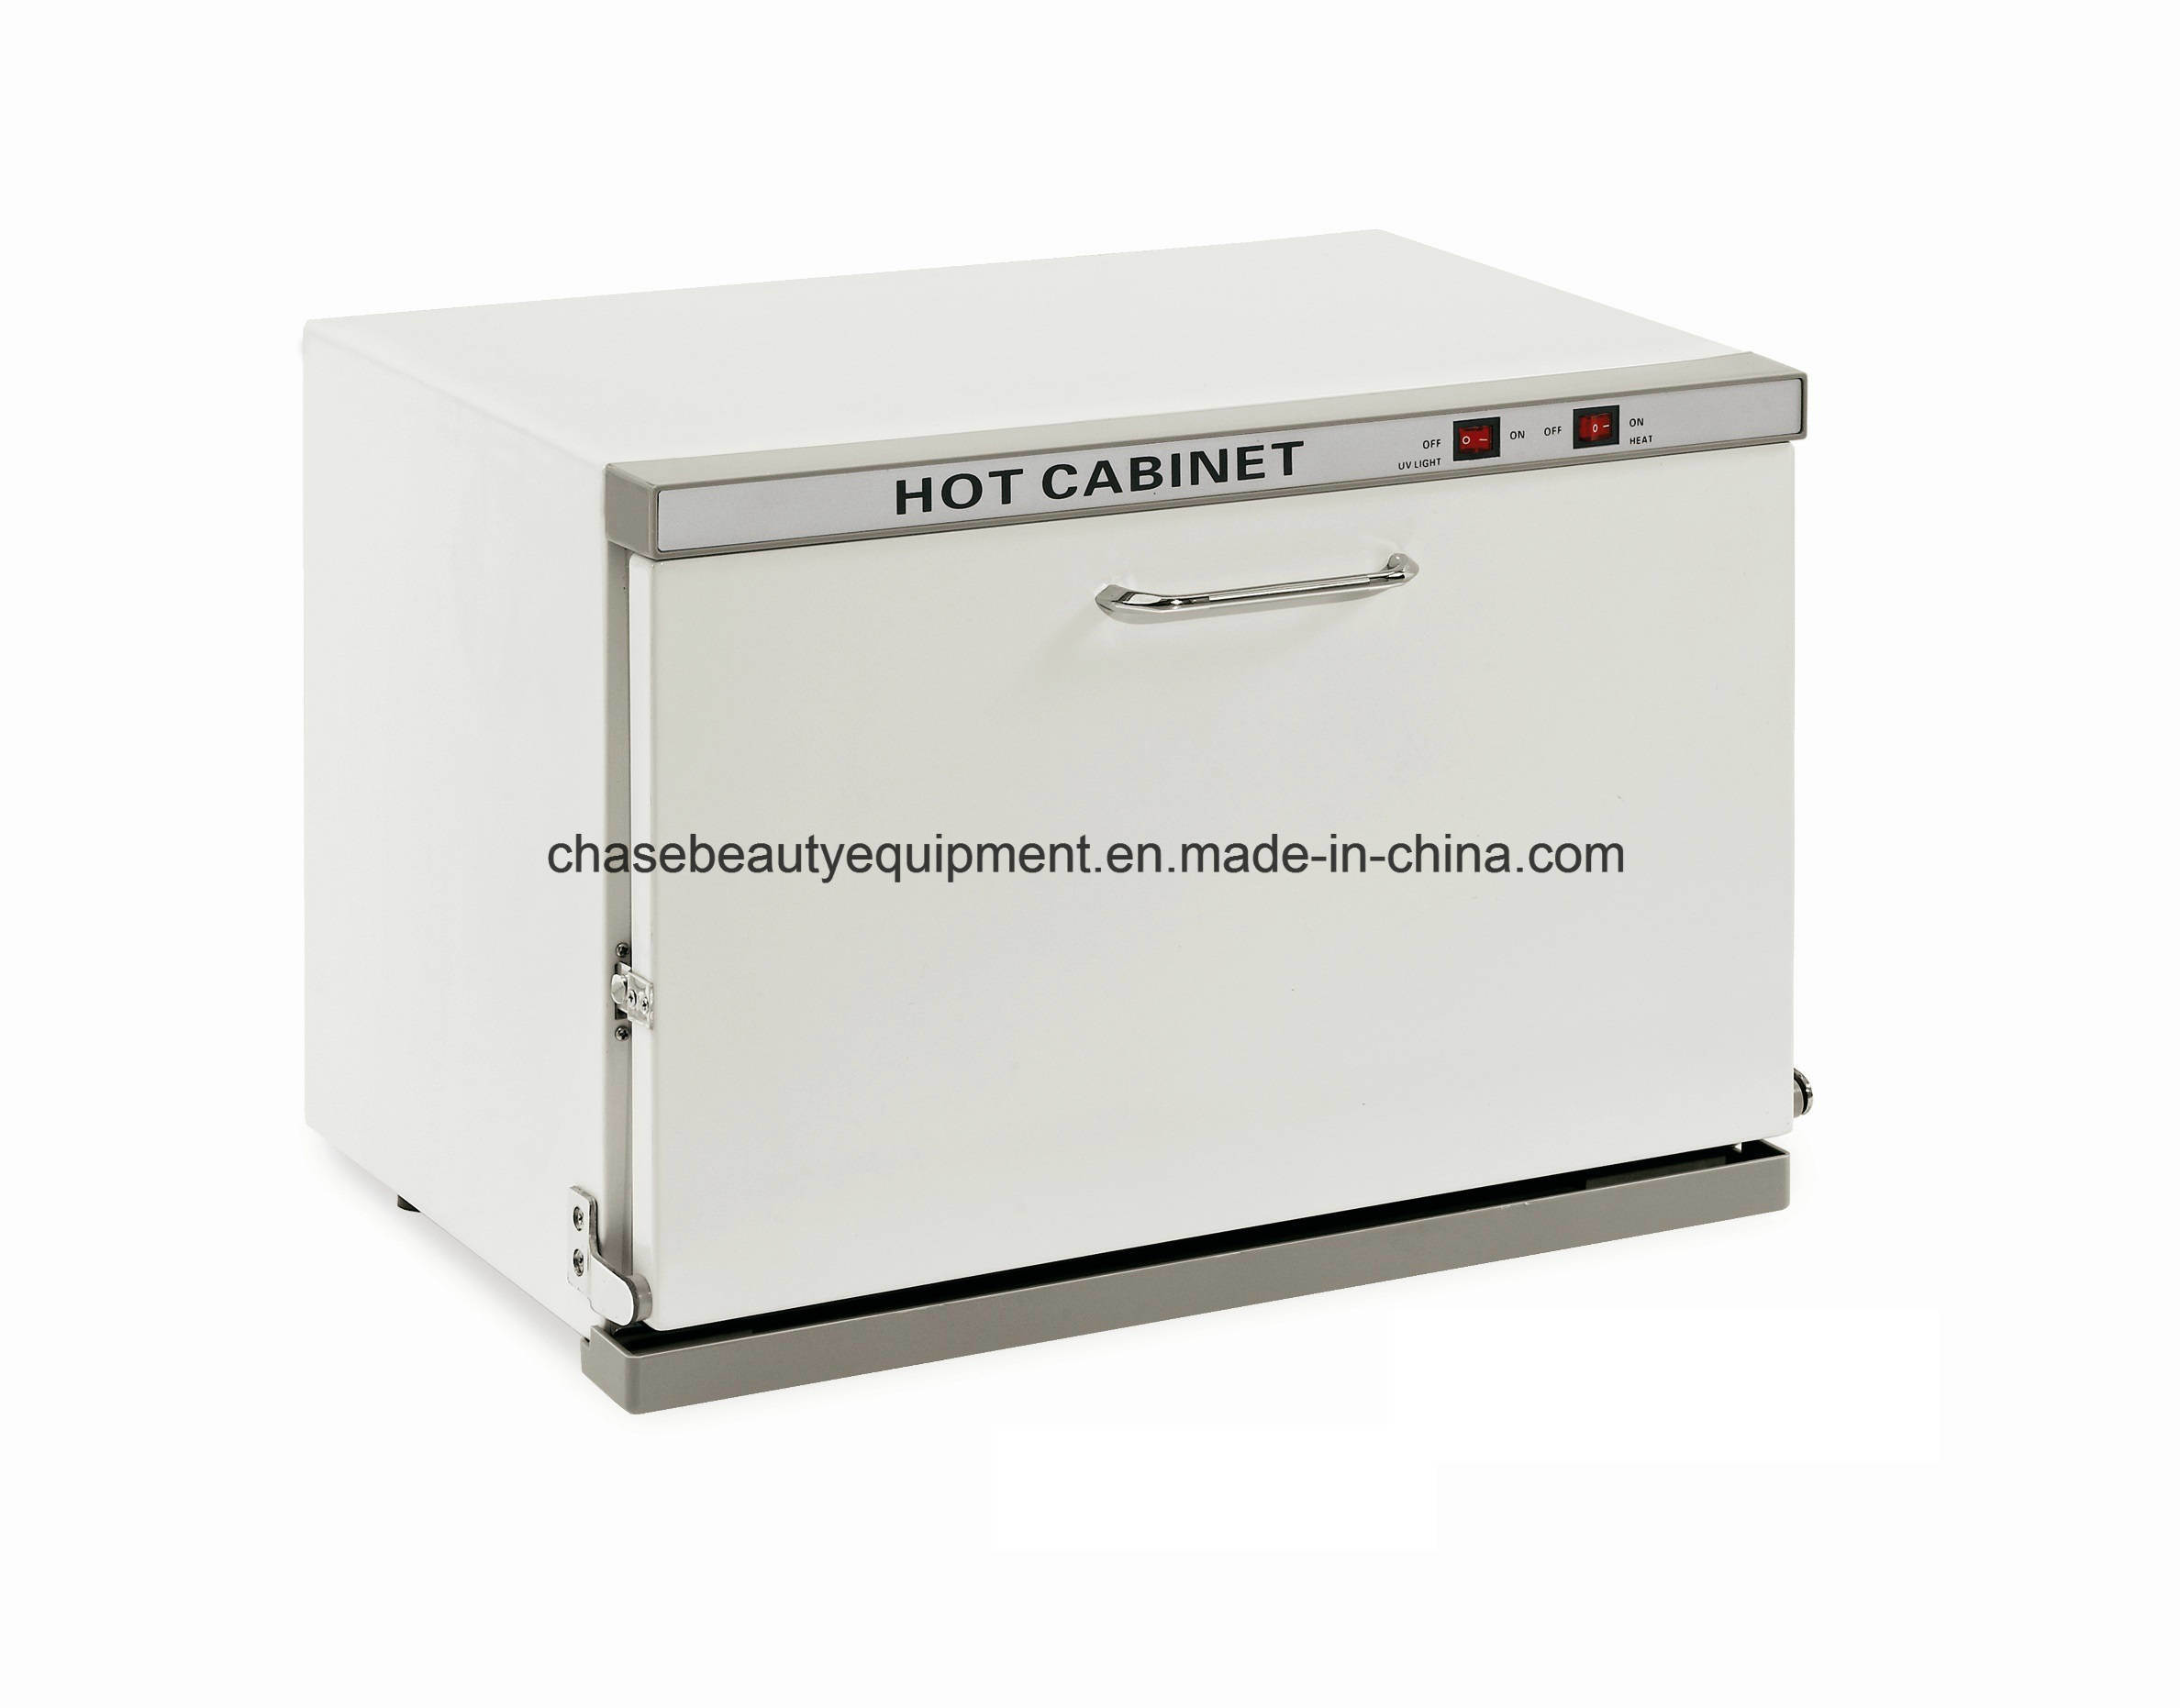 High Quality UV Hot Towel Warmer Cabiner and Sterilizer